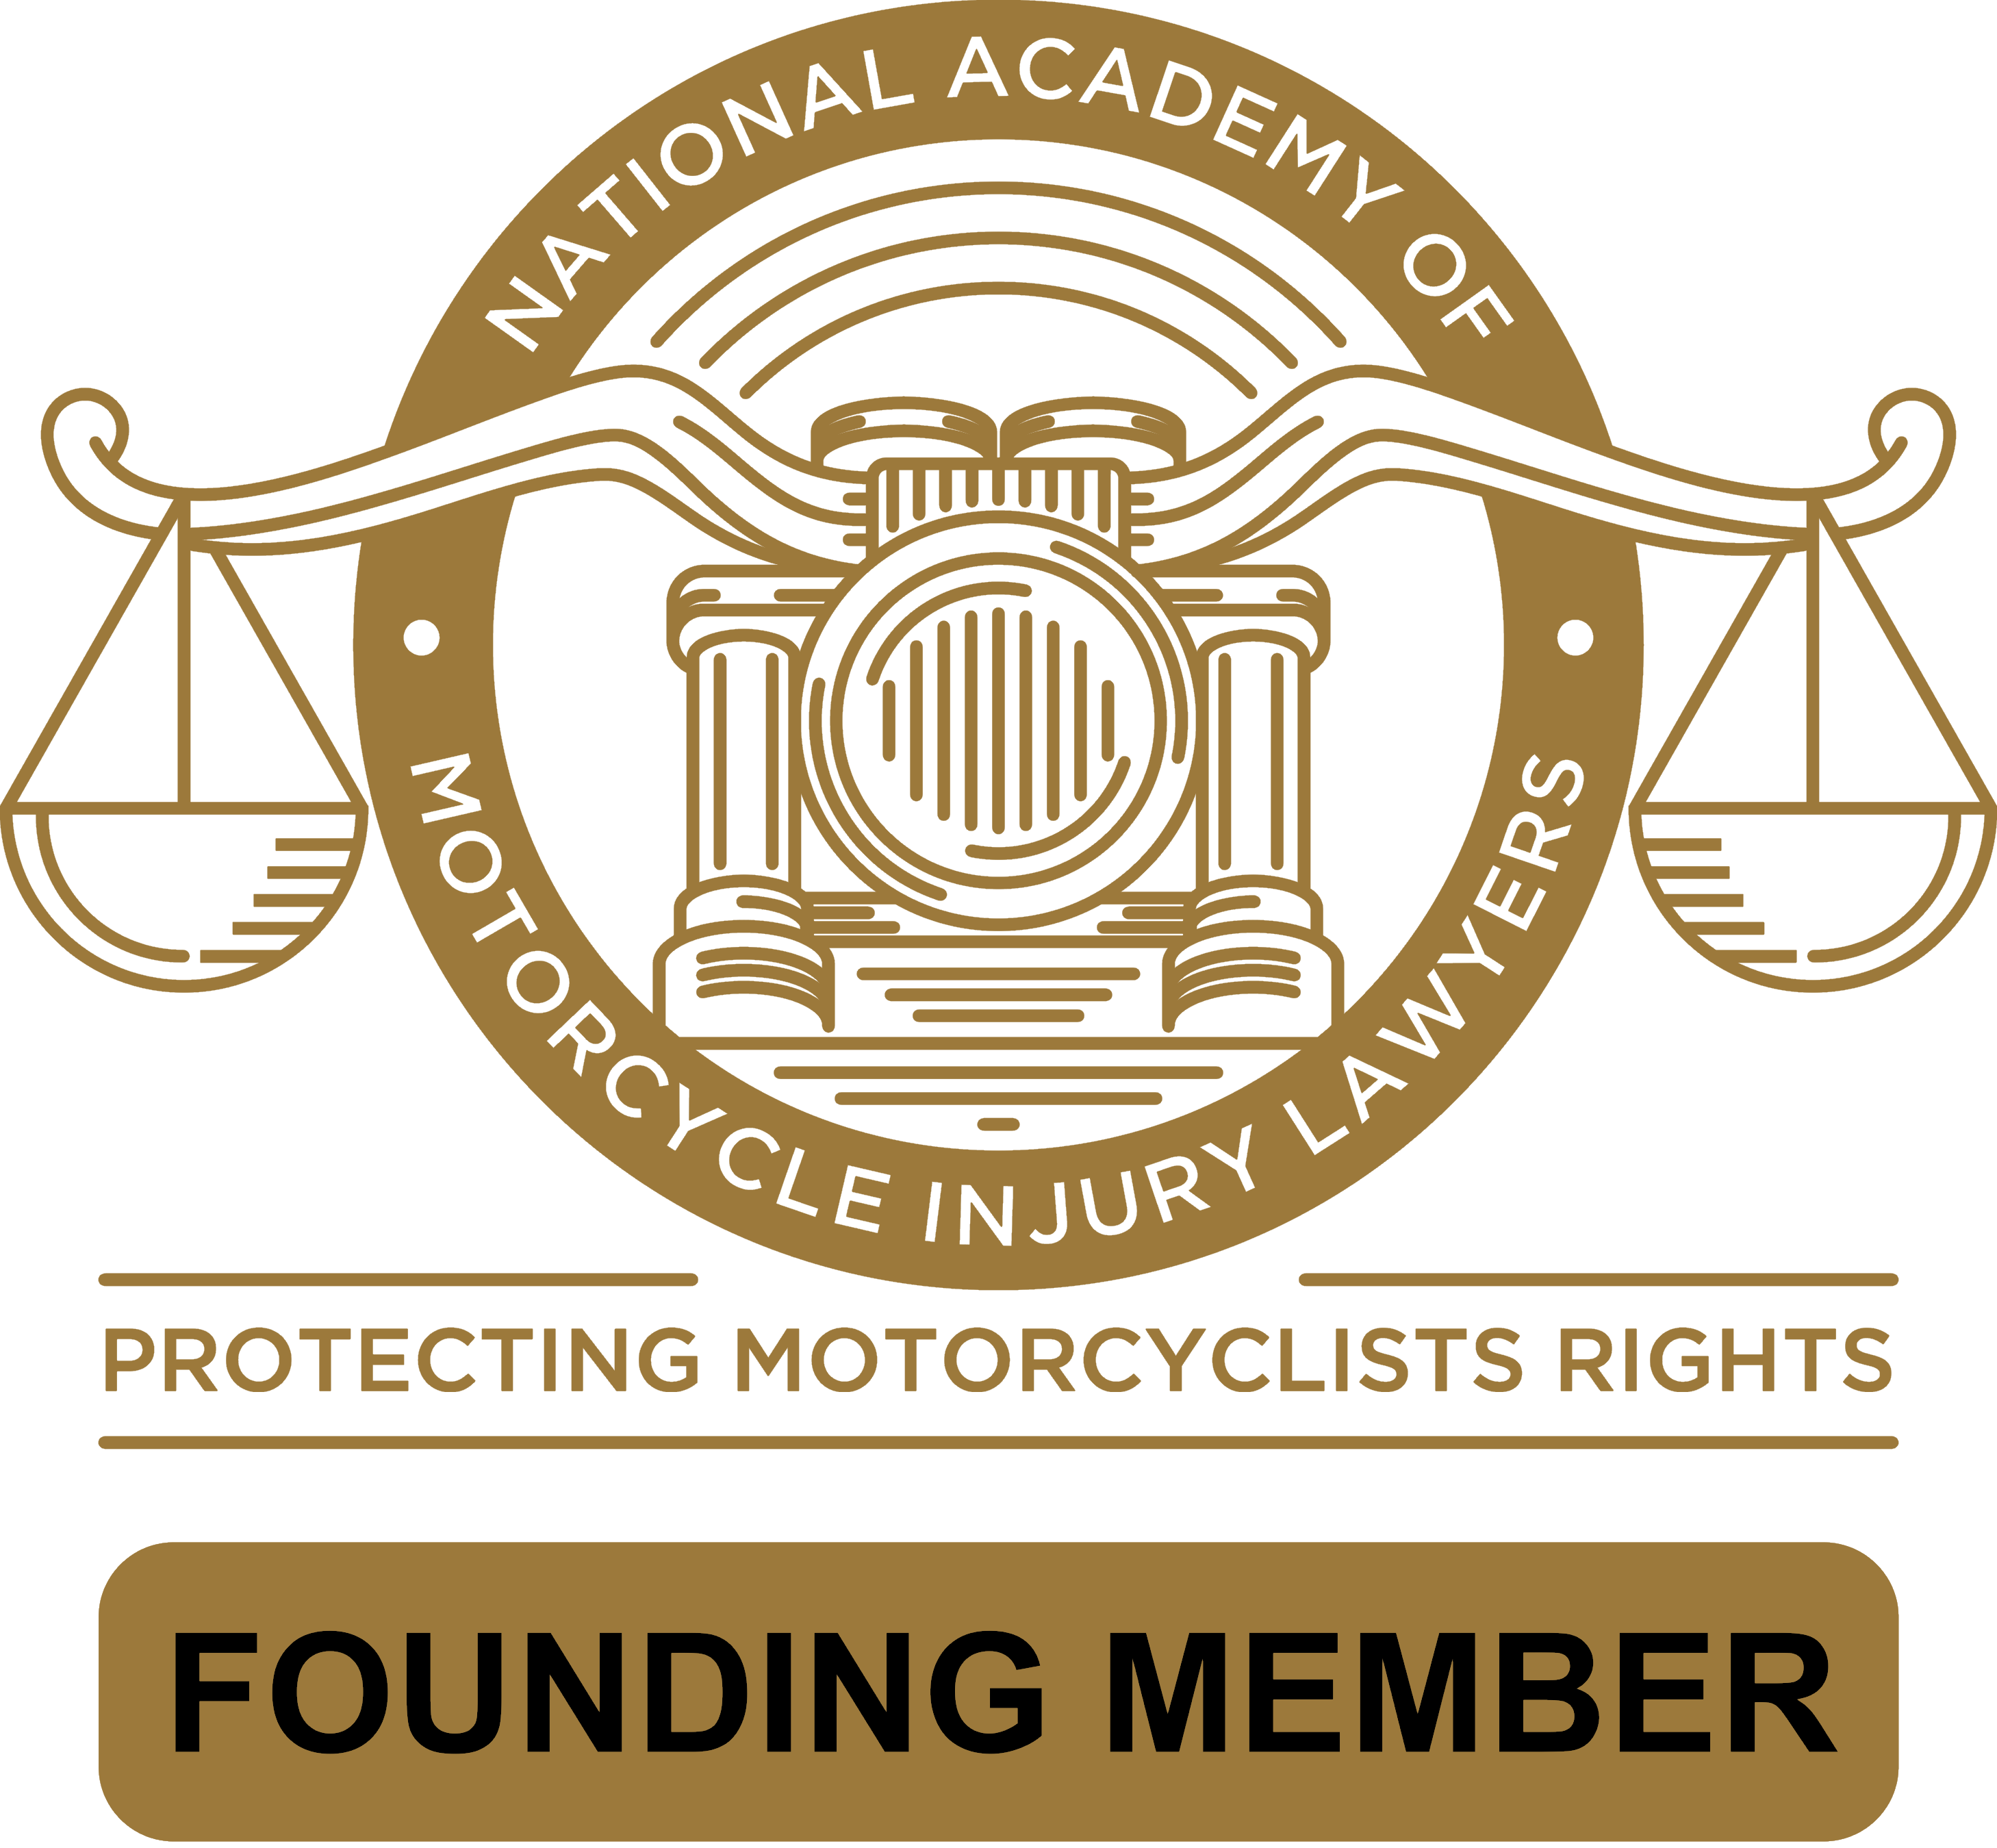 National Academy of Motorcycle Injury Lawyers Founding Member logo